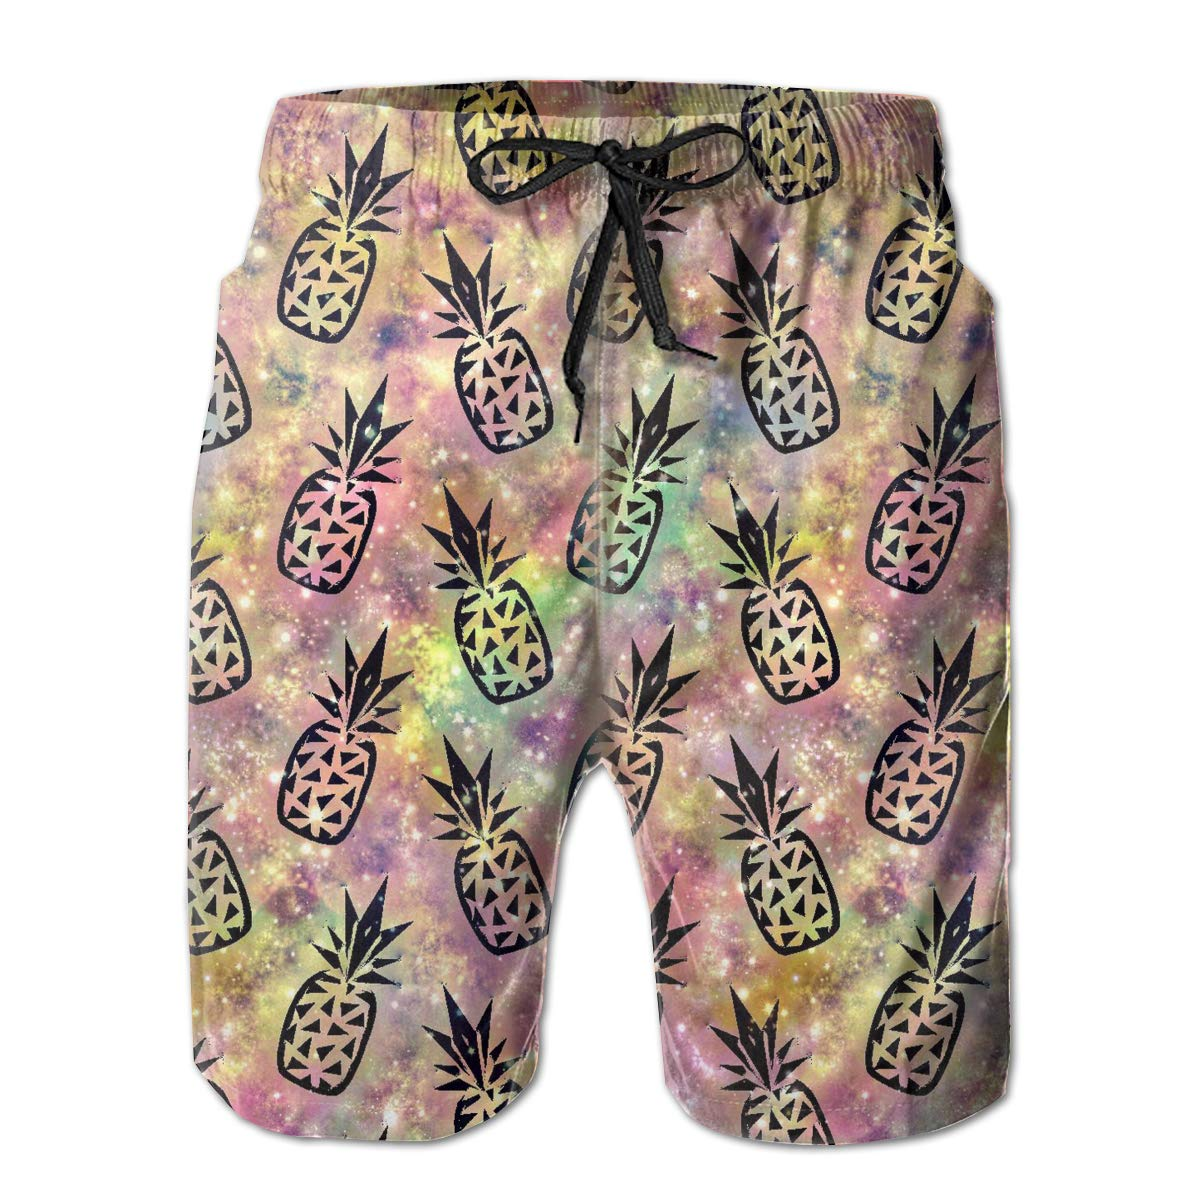 MikonsuGalaxy Pineapples Mens Colorful Swim Trunks Beach Board Shorts with Lining White